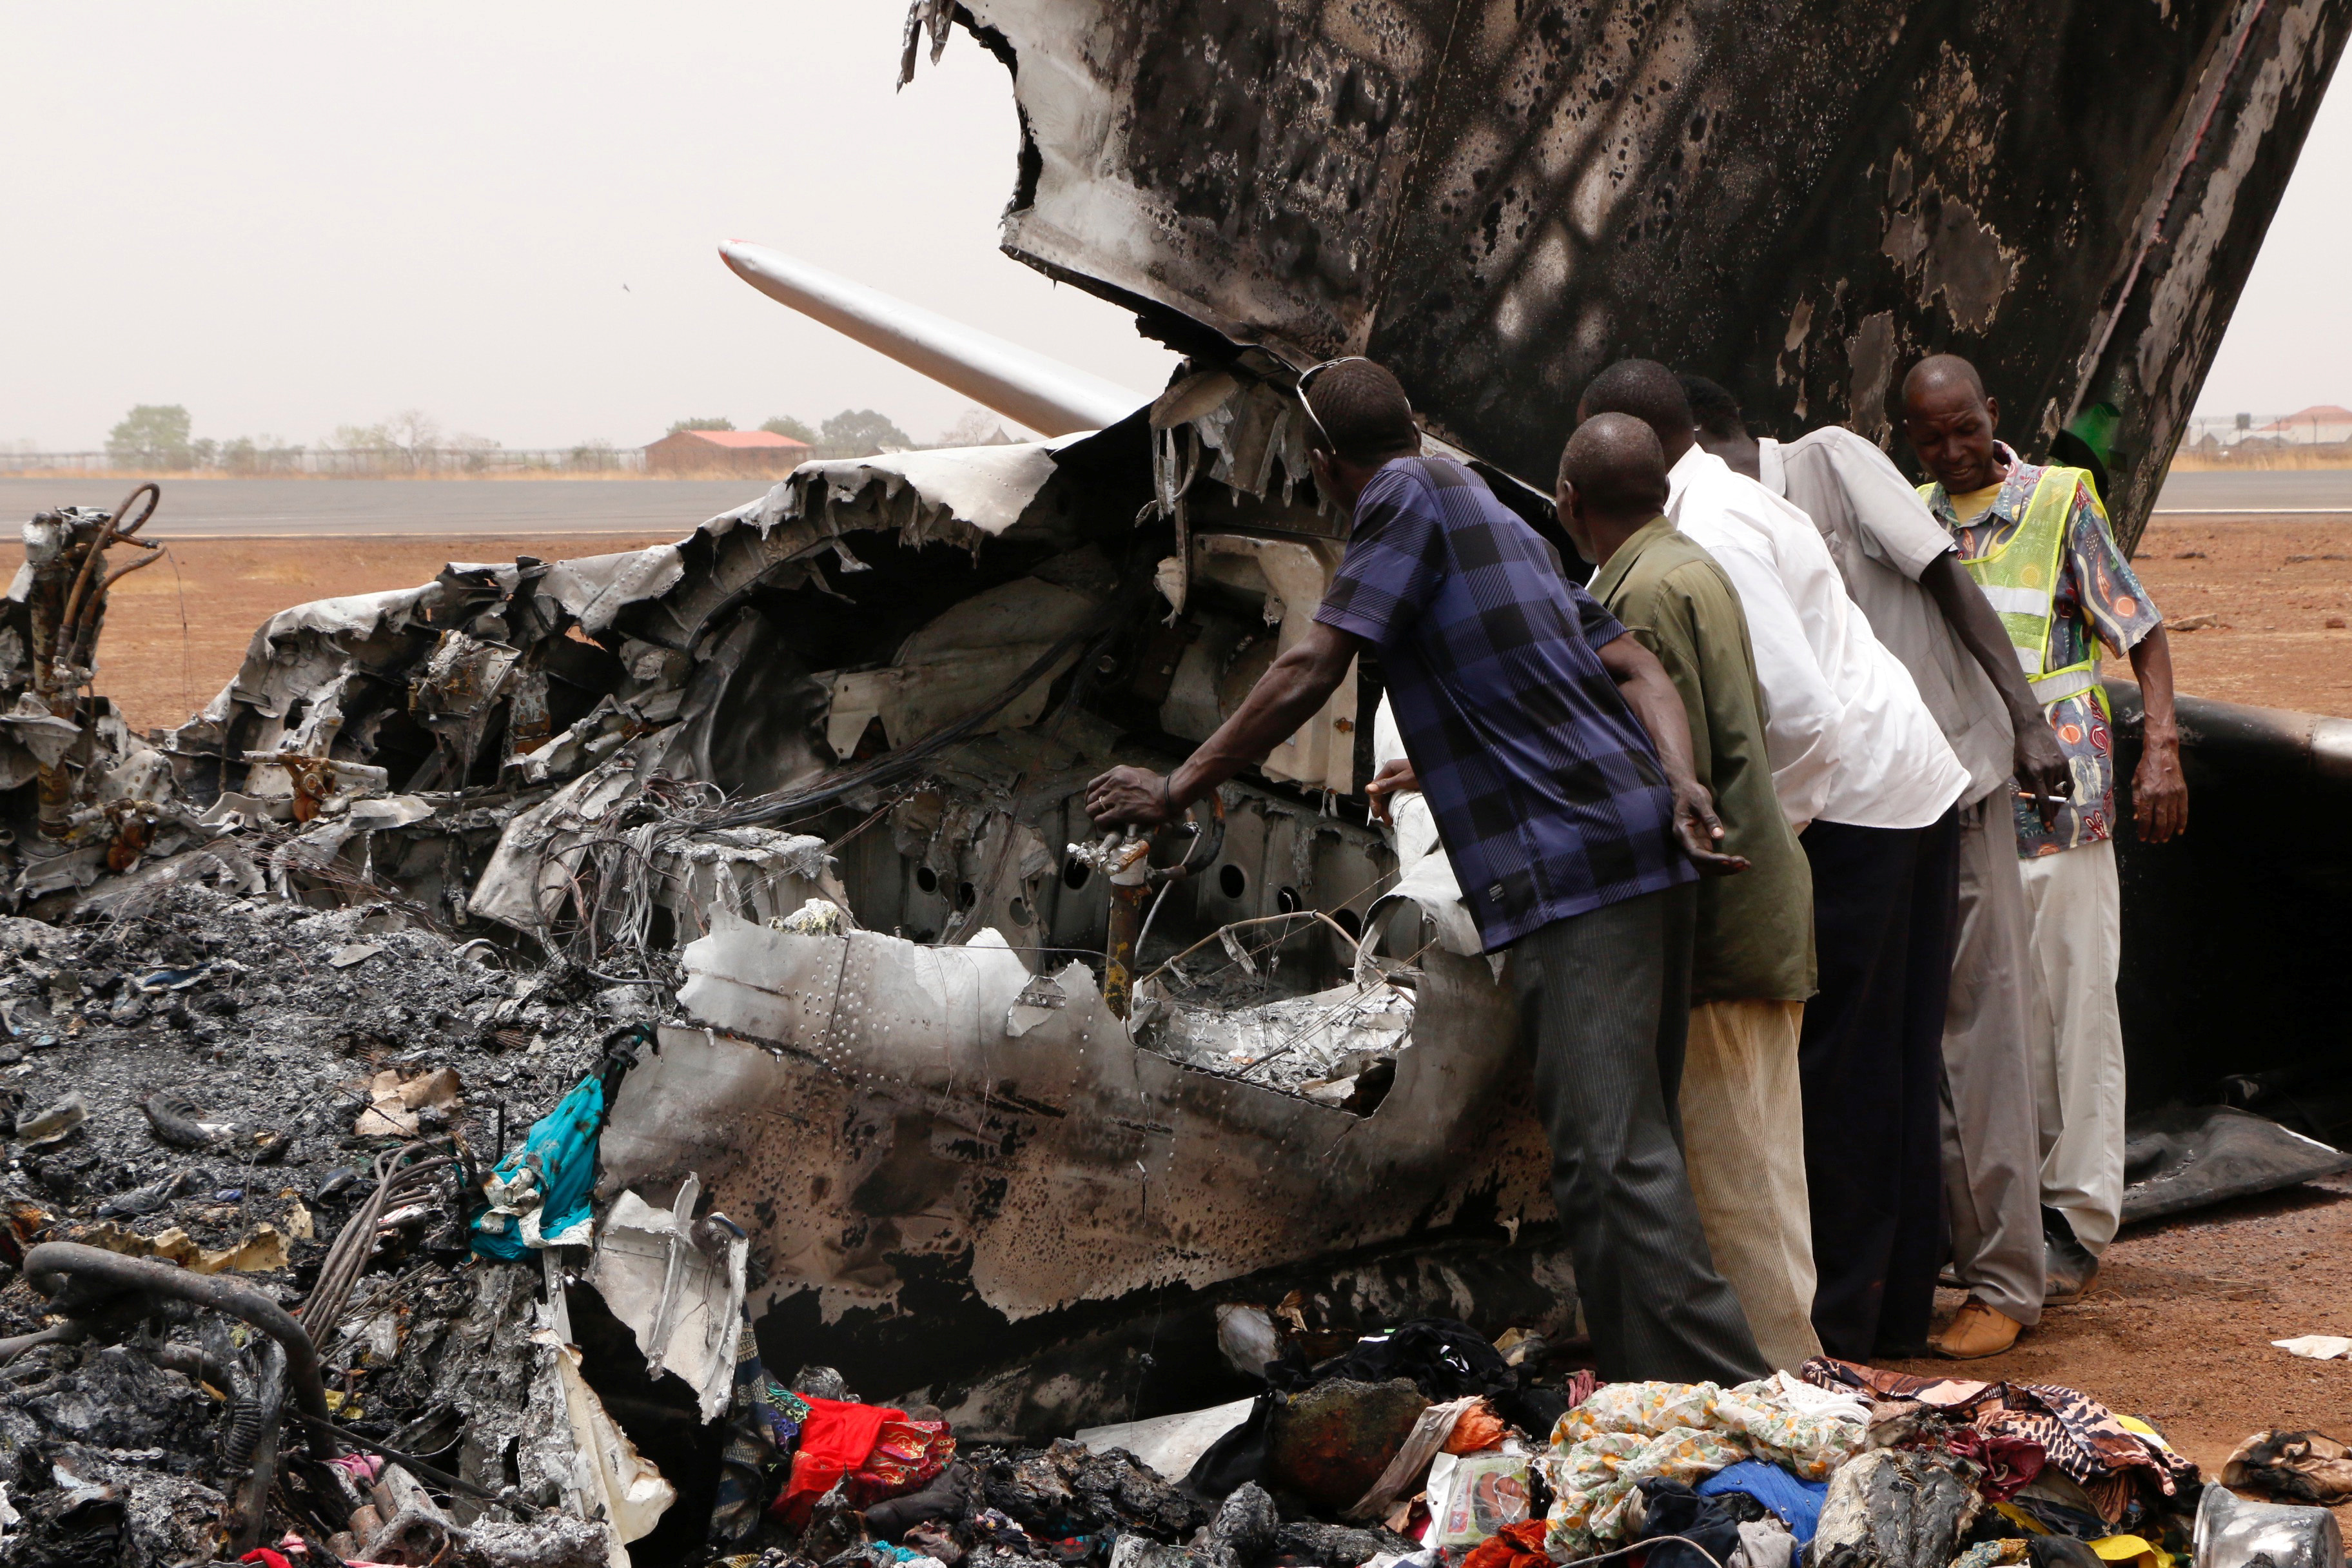 WAU 2017-03-21 Aviation staff assess the wreckage of a South Supreme Airlines plane that crashed when it landed in the northwestern town of Wau from South Sudan's capital Juba, March 21, 2017. REUTERS/Jok Solomun FOR EDITORIAL USE ONLY. NO RESALES. NO ARCHIVE. TPX IMAGES OF THE DAY Photo: / REUTERS / TT / kod 72000